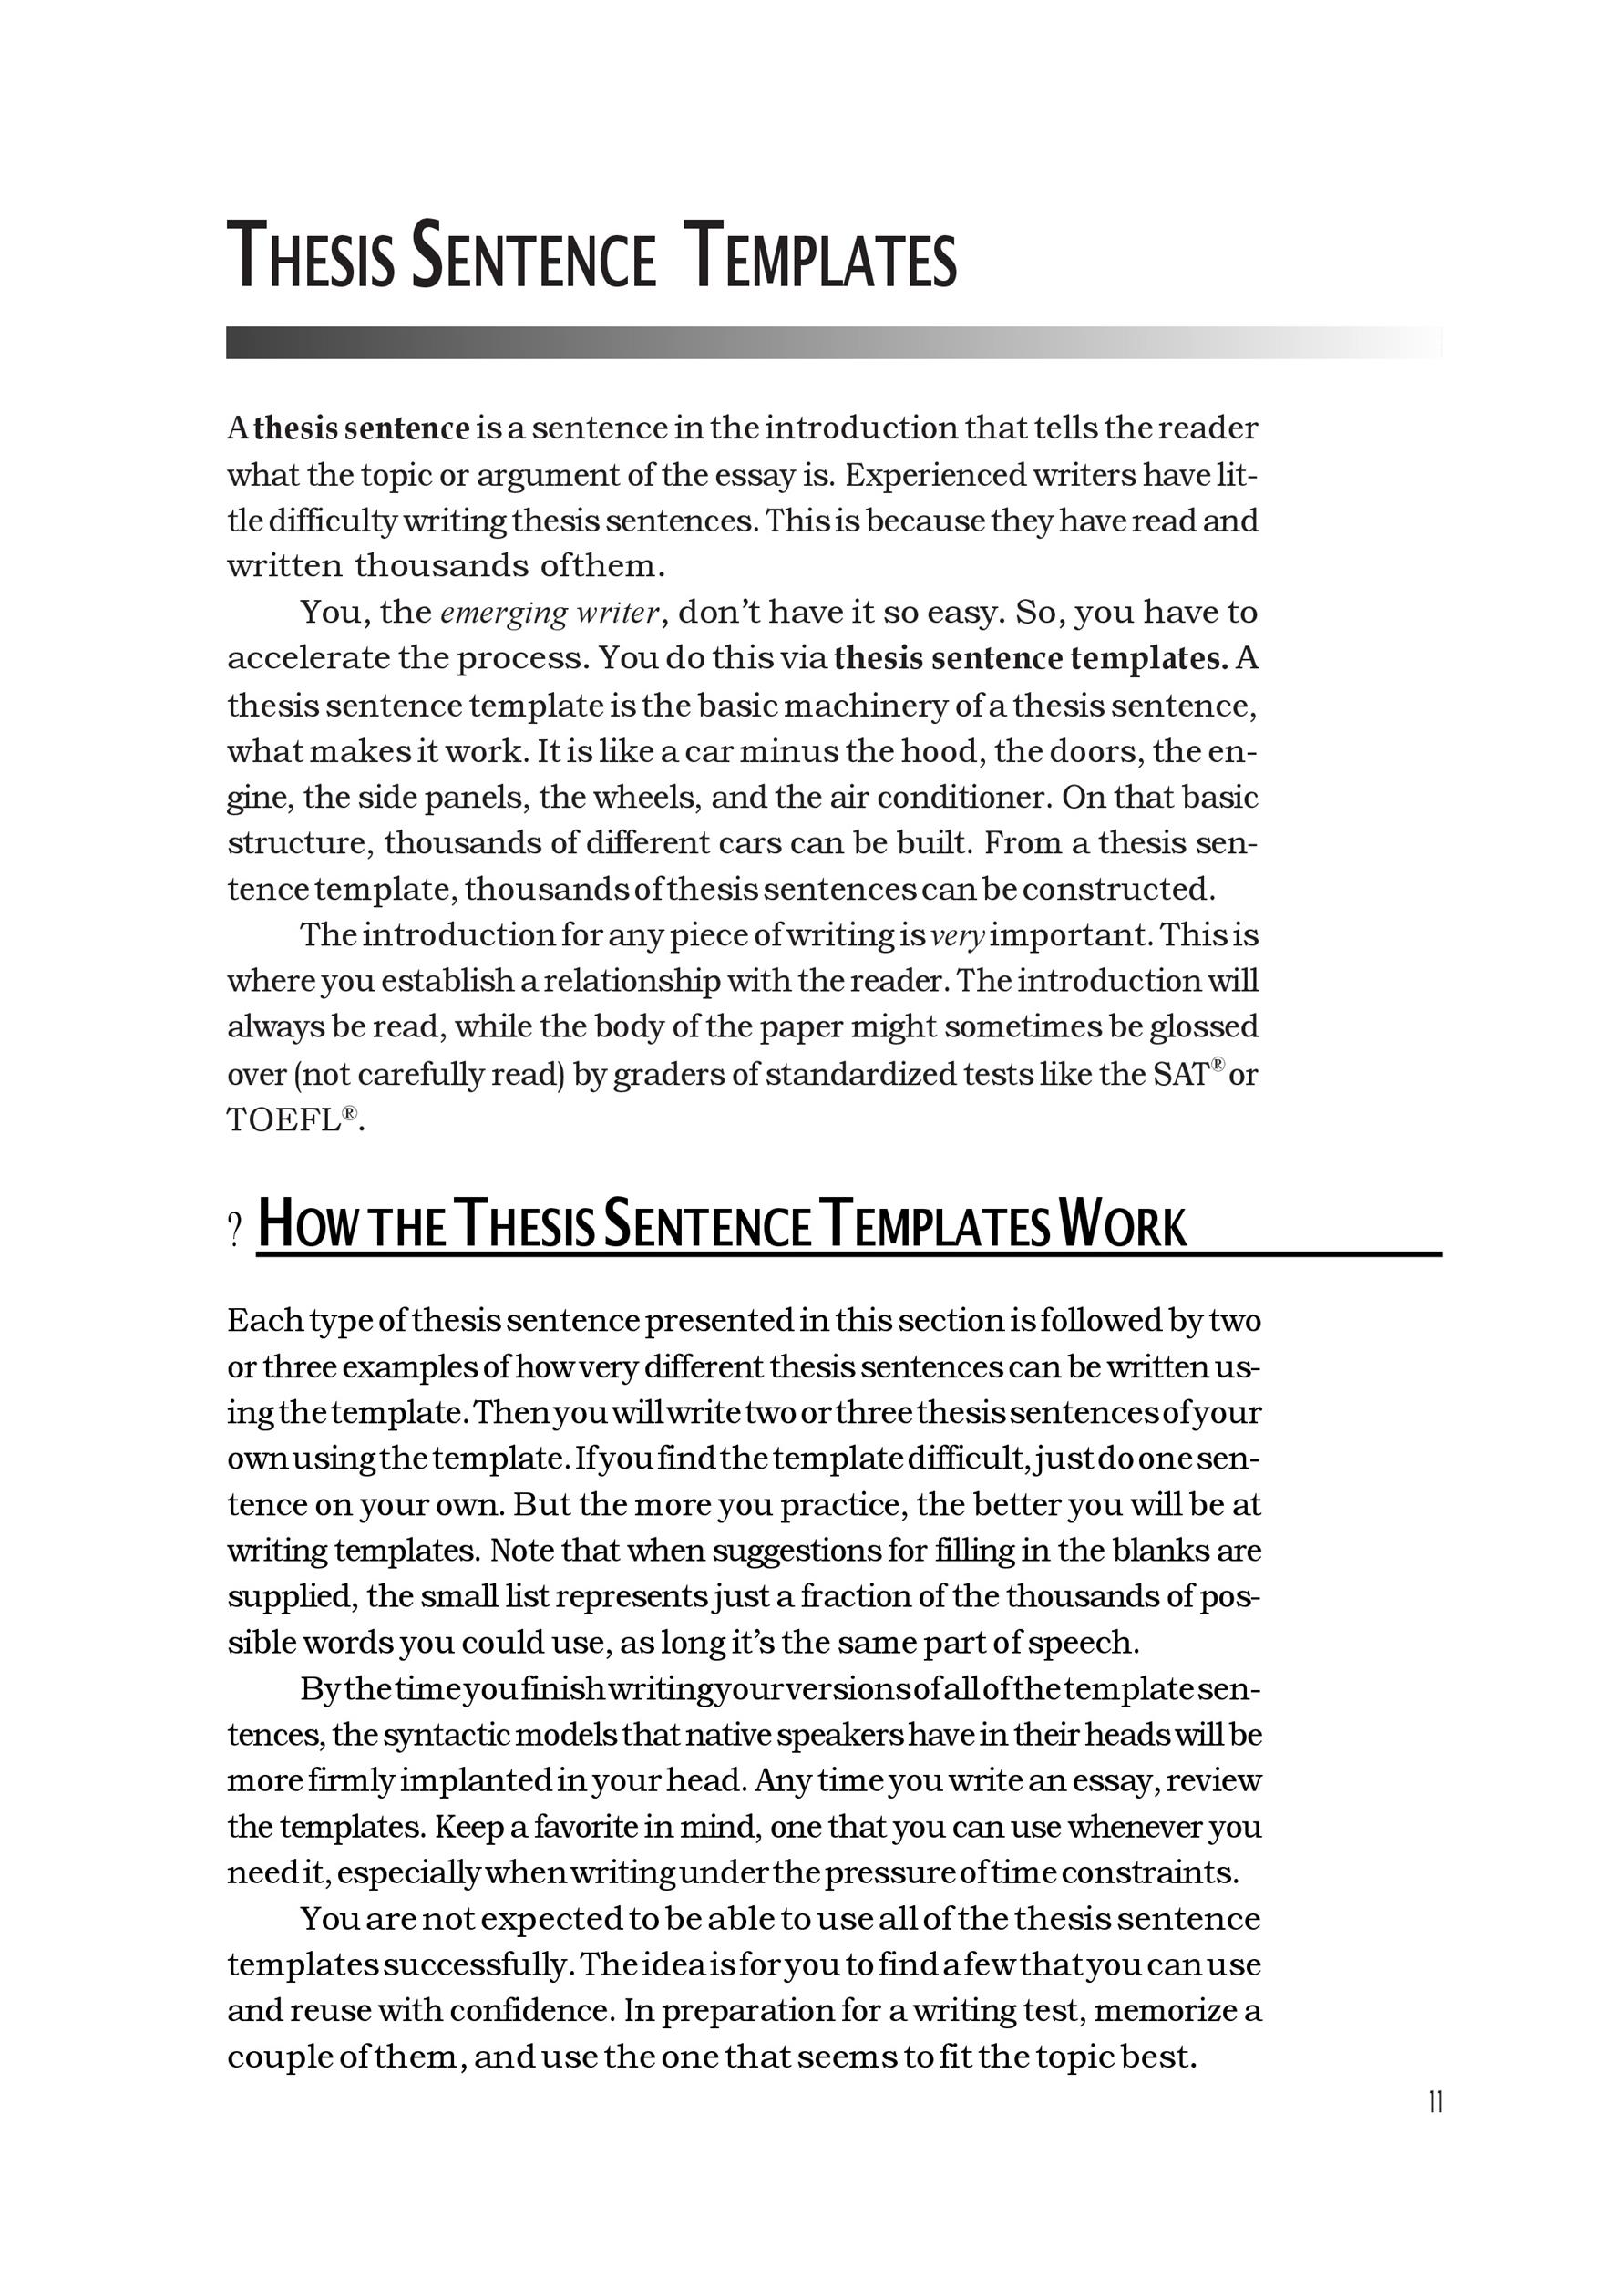 Free thesis statement template 01